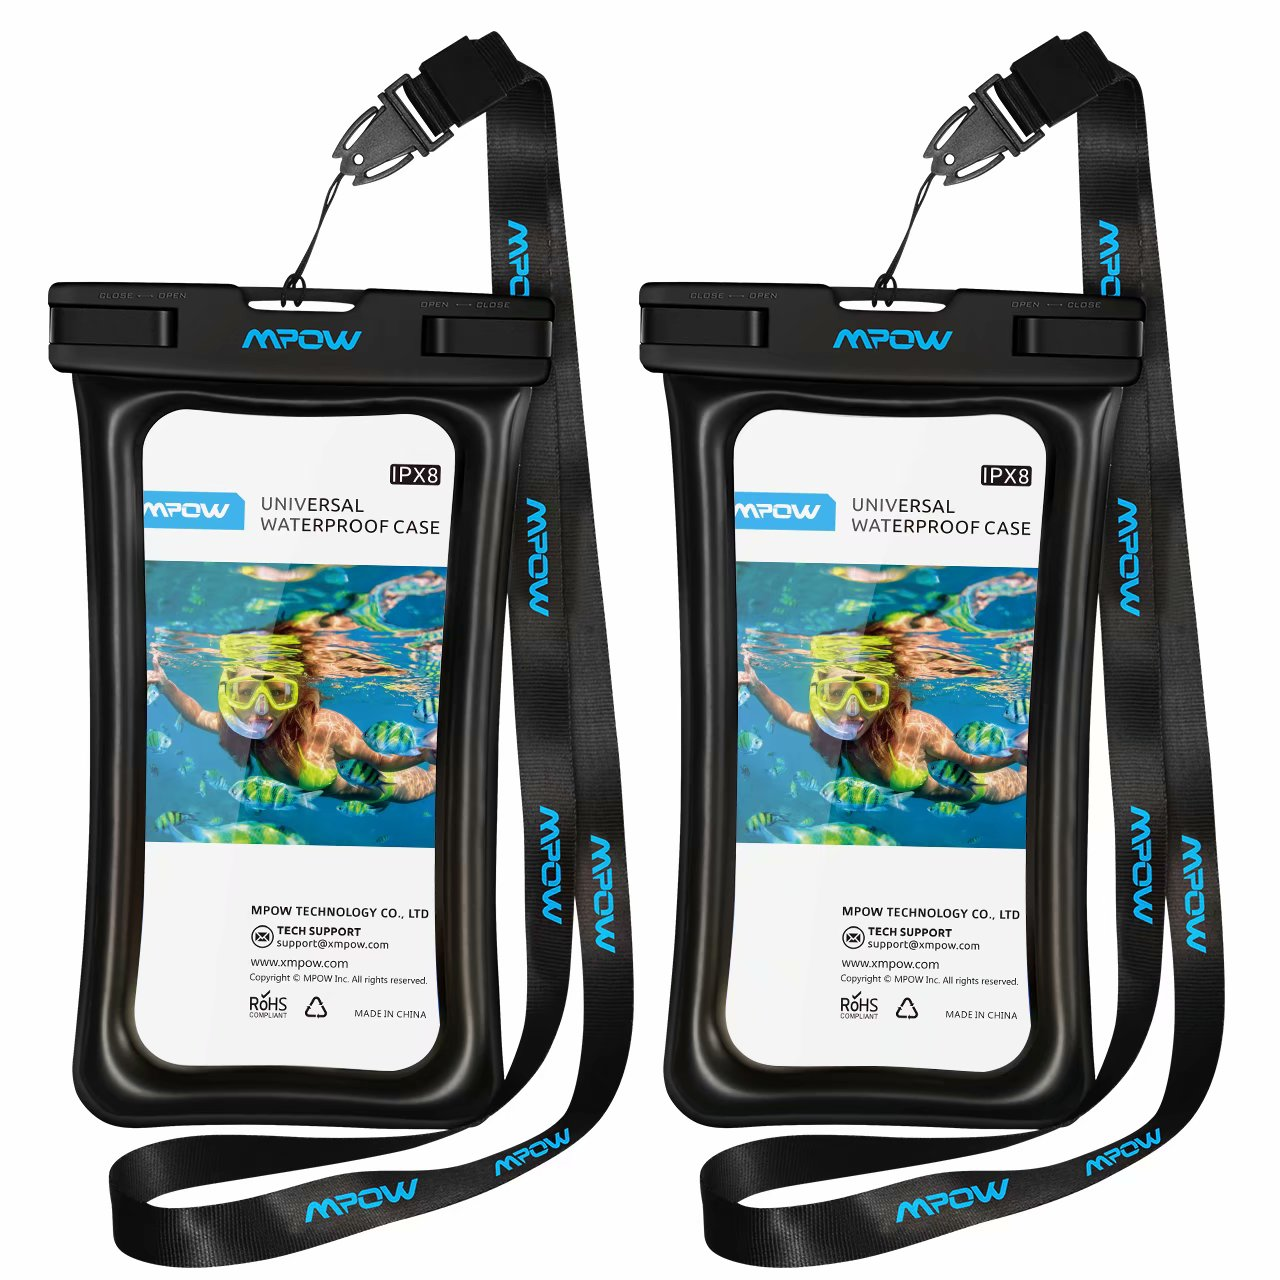 """Mpow 2 Pack Floatable IPX8 Universal Waterproof Case, Dry Bag Cellphone Pouch for iPhone Xs Max/Xr/X/8/8plus/7/7plus Galaxy s9/s8 Note 9/8 Google Pixel up to 6.5"""" (Black)"""